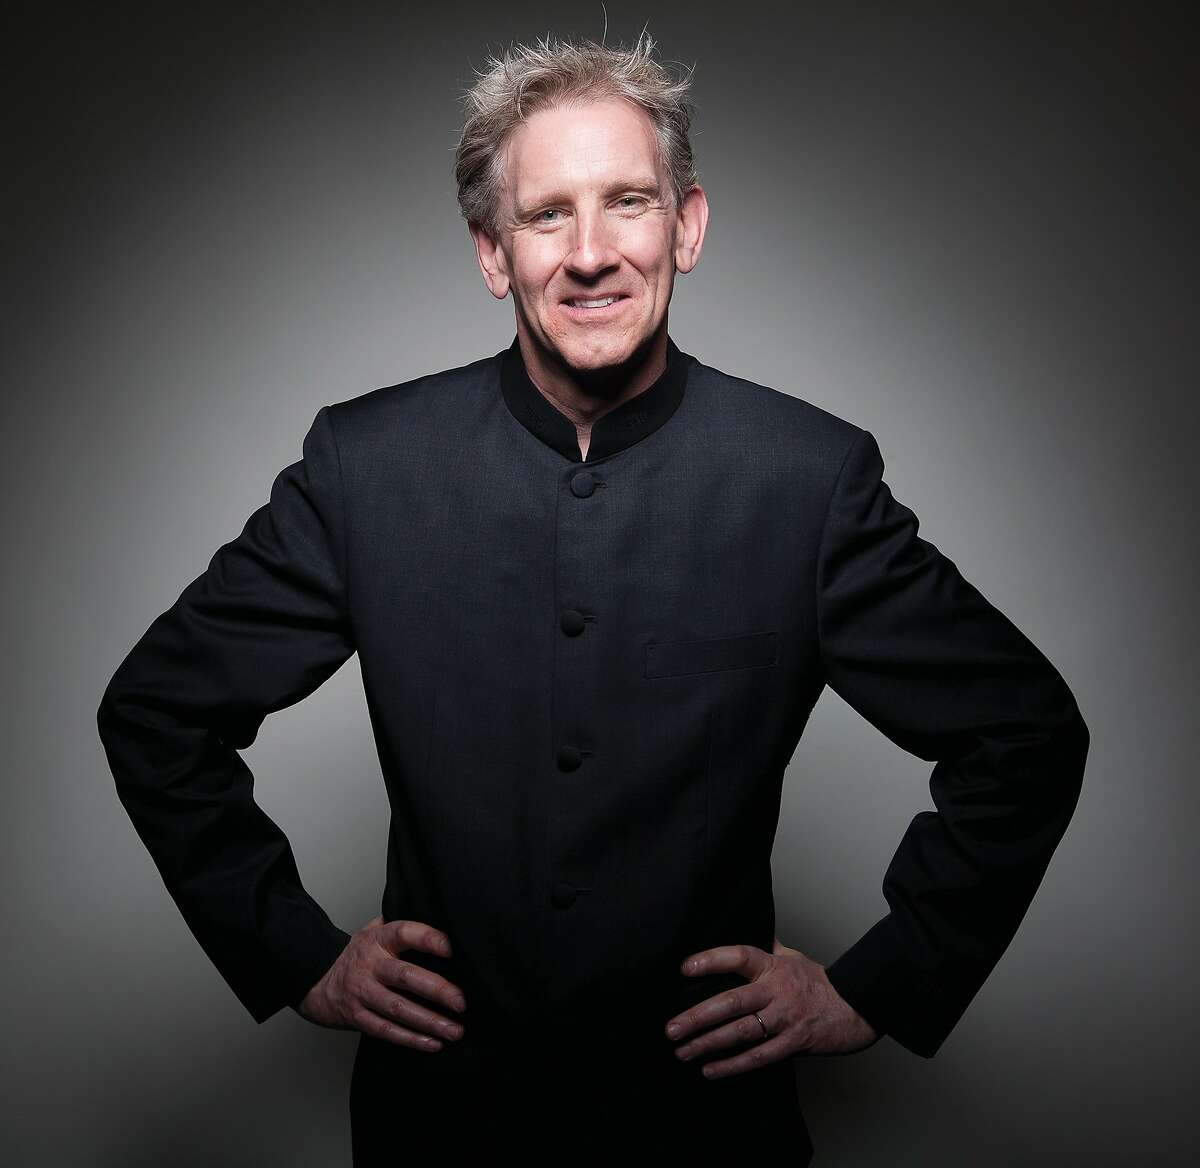 Marin Symphony maestro Alasdair Neale will conduct two concerts featuring the violinst Midori, who will be in Marin for an intensive week of workshops with young musicians, outreach and performance.